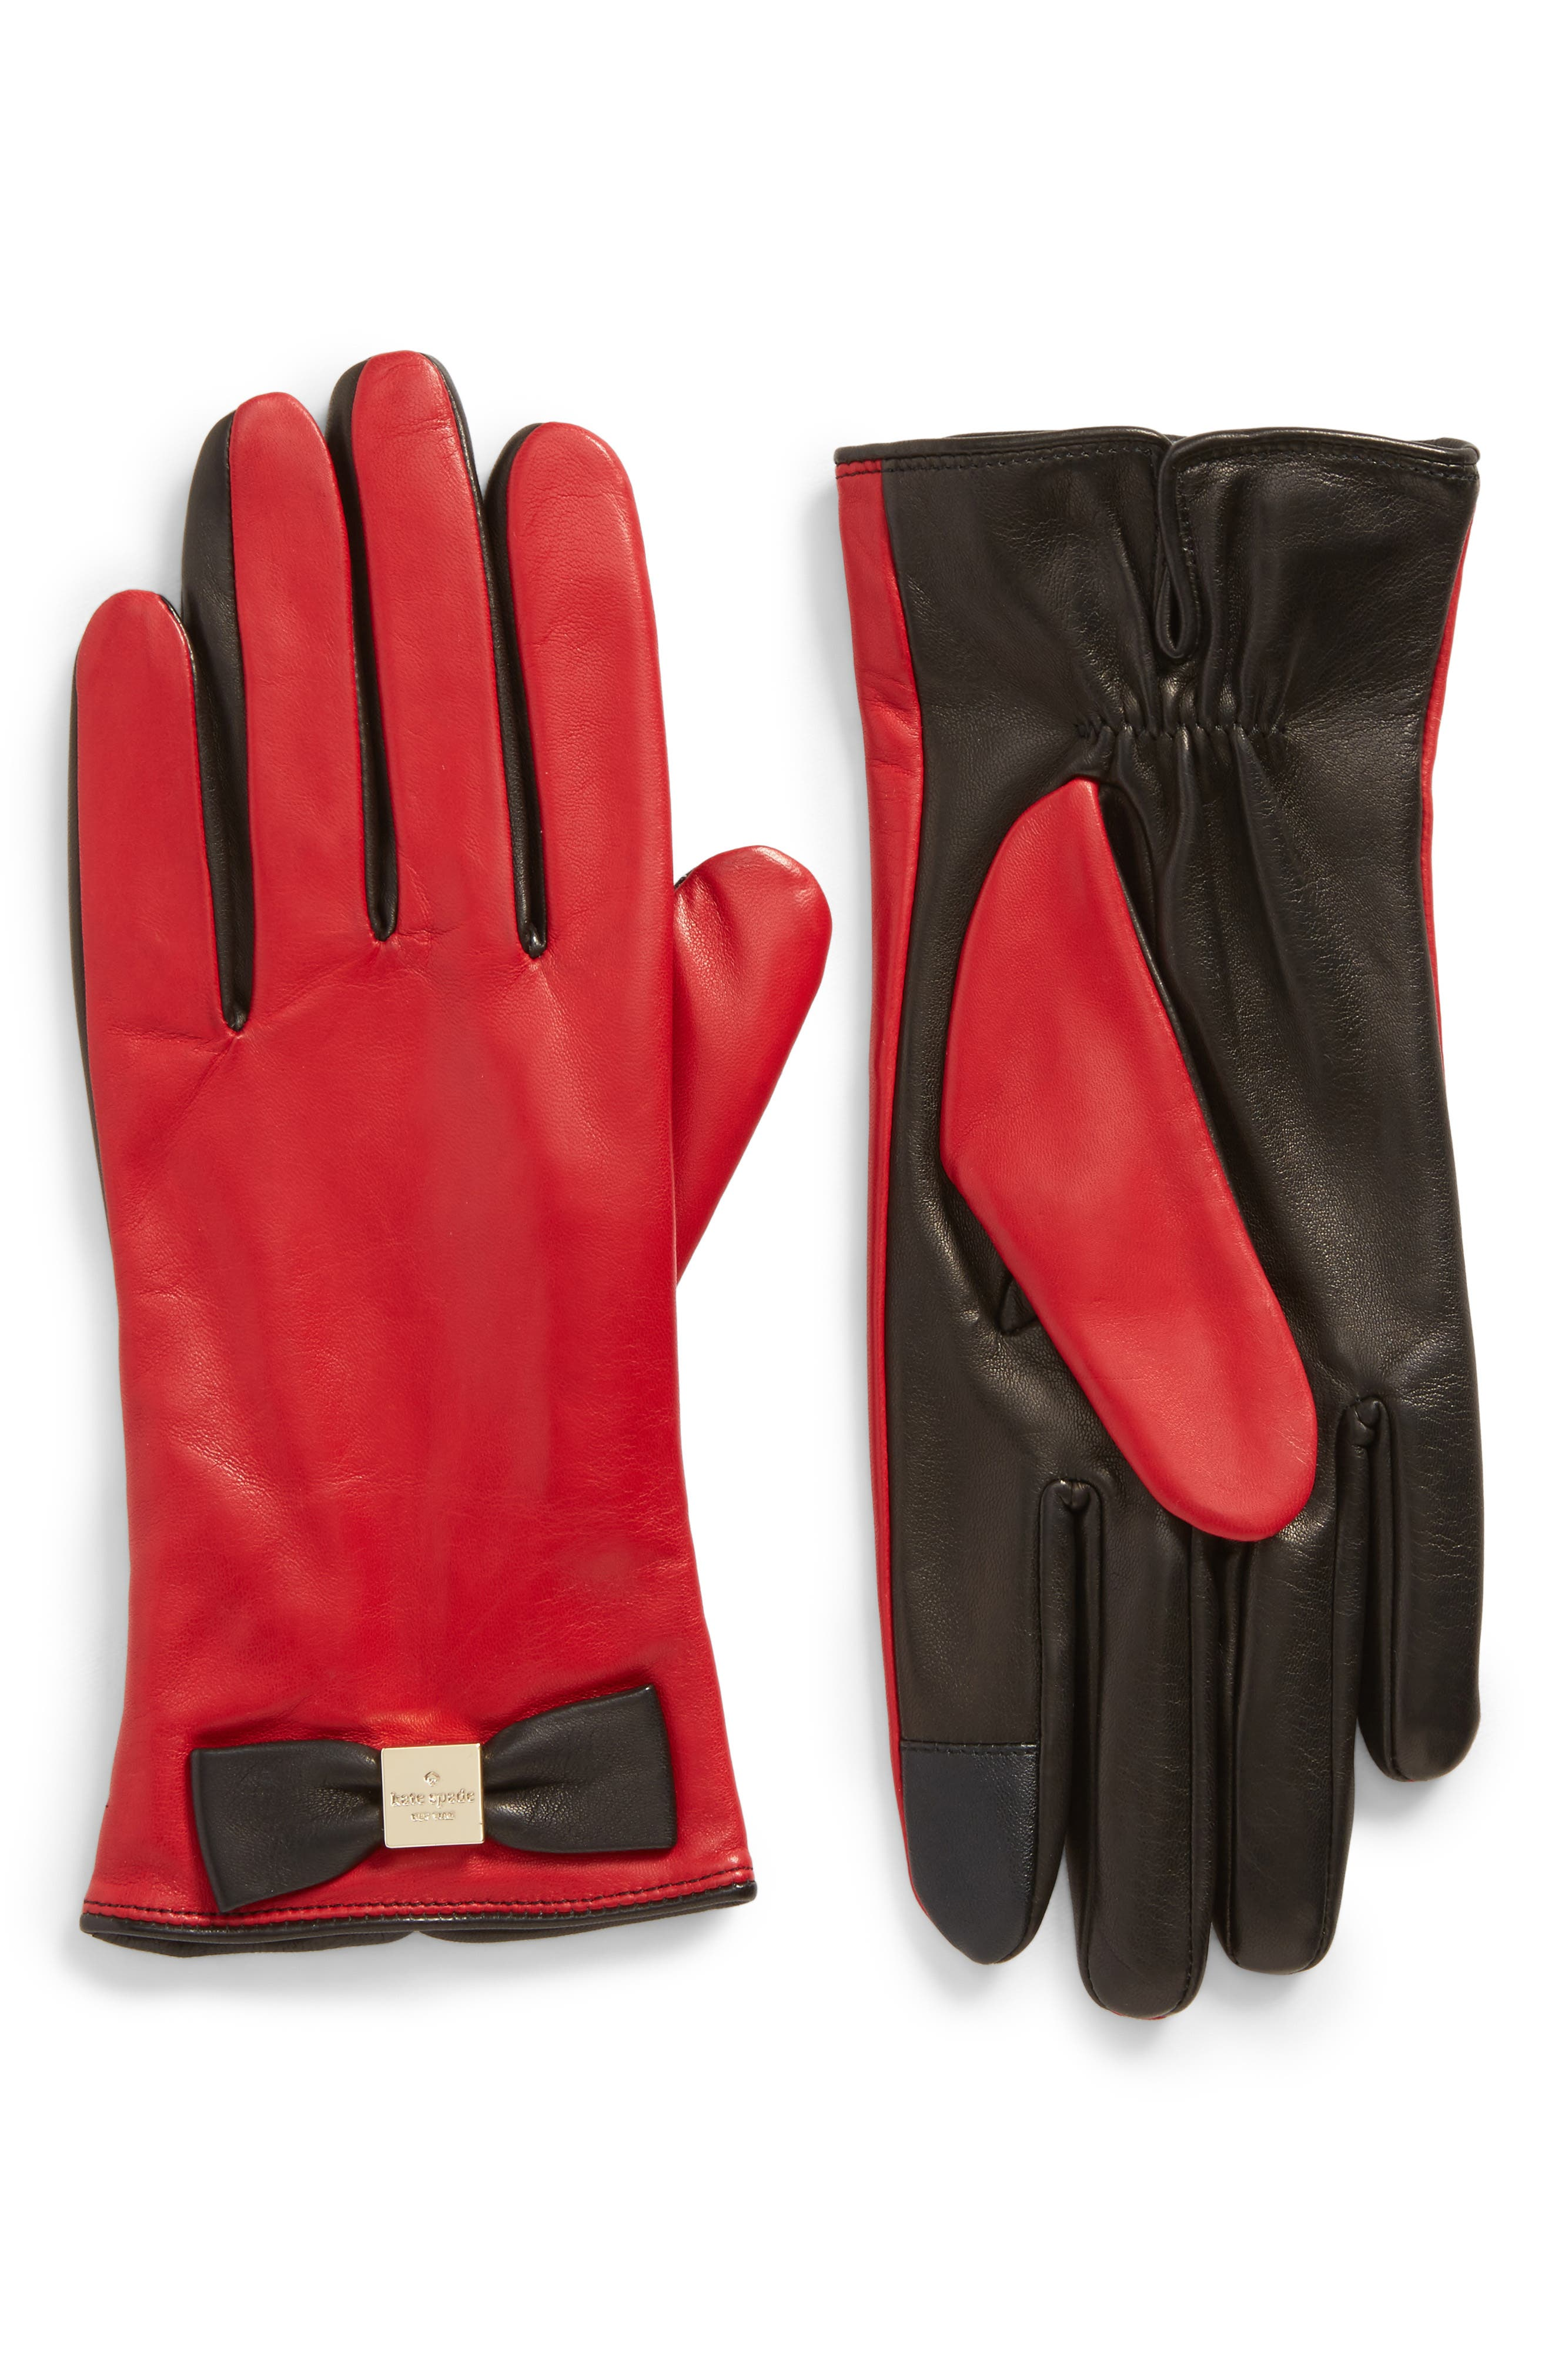 kate spade new york 'bow logo' gloves,                         Main,                         color, Charm Red/Black